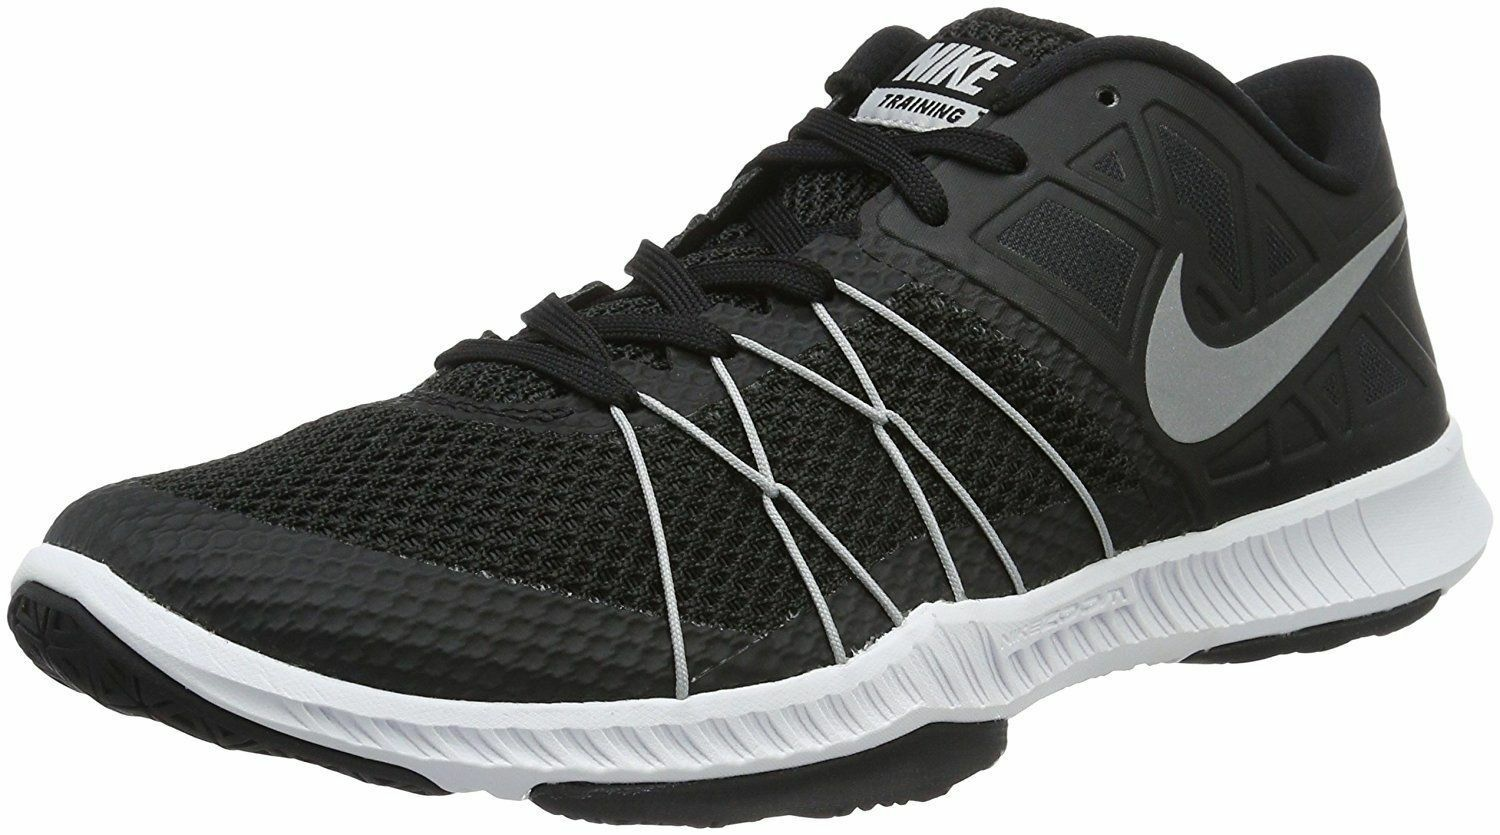 New Nike Zoom Train Incredibly Fast Men's Running Training Shoe Black 844803 001